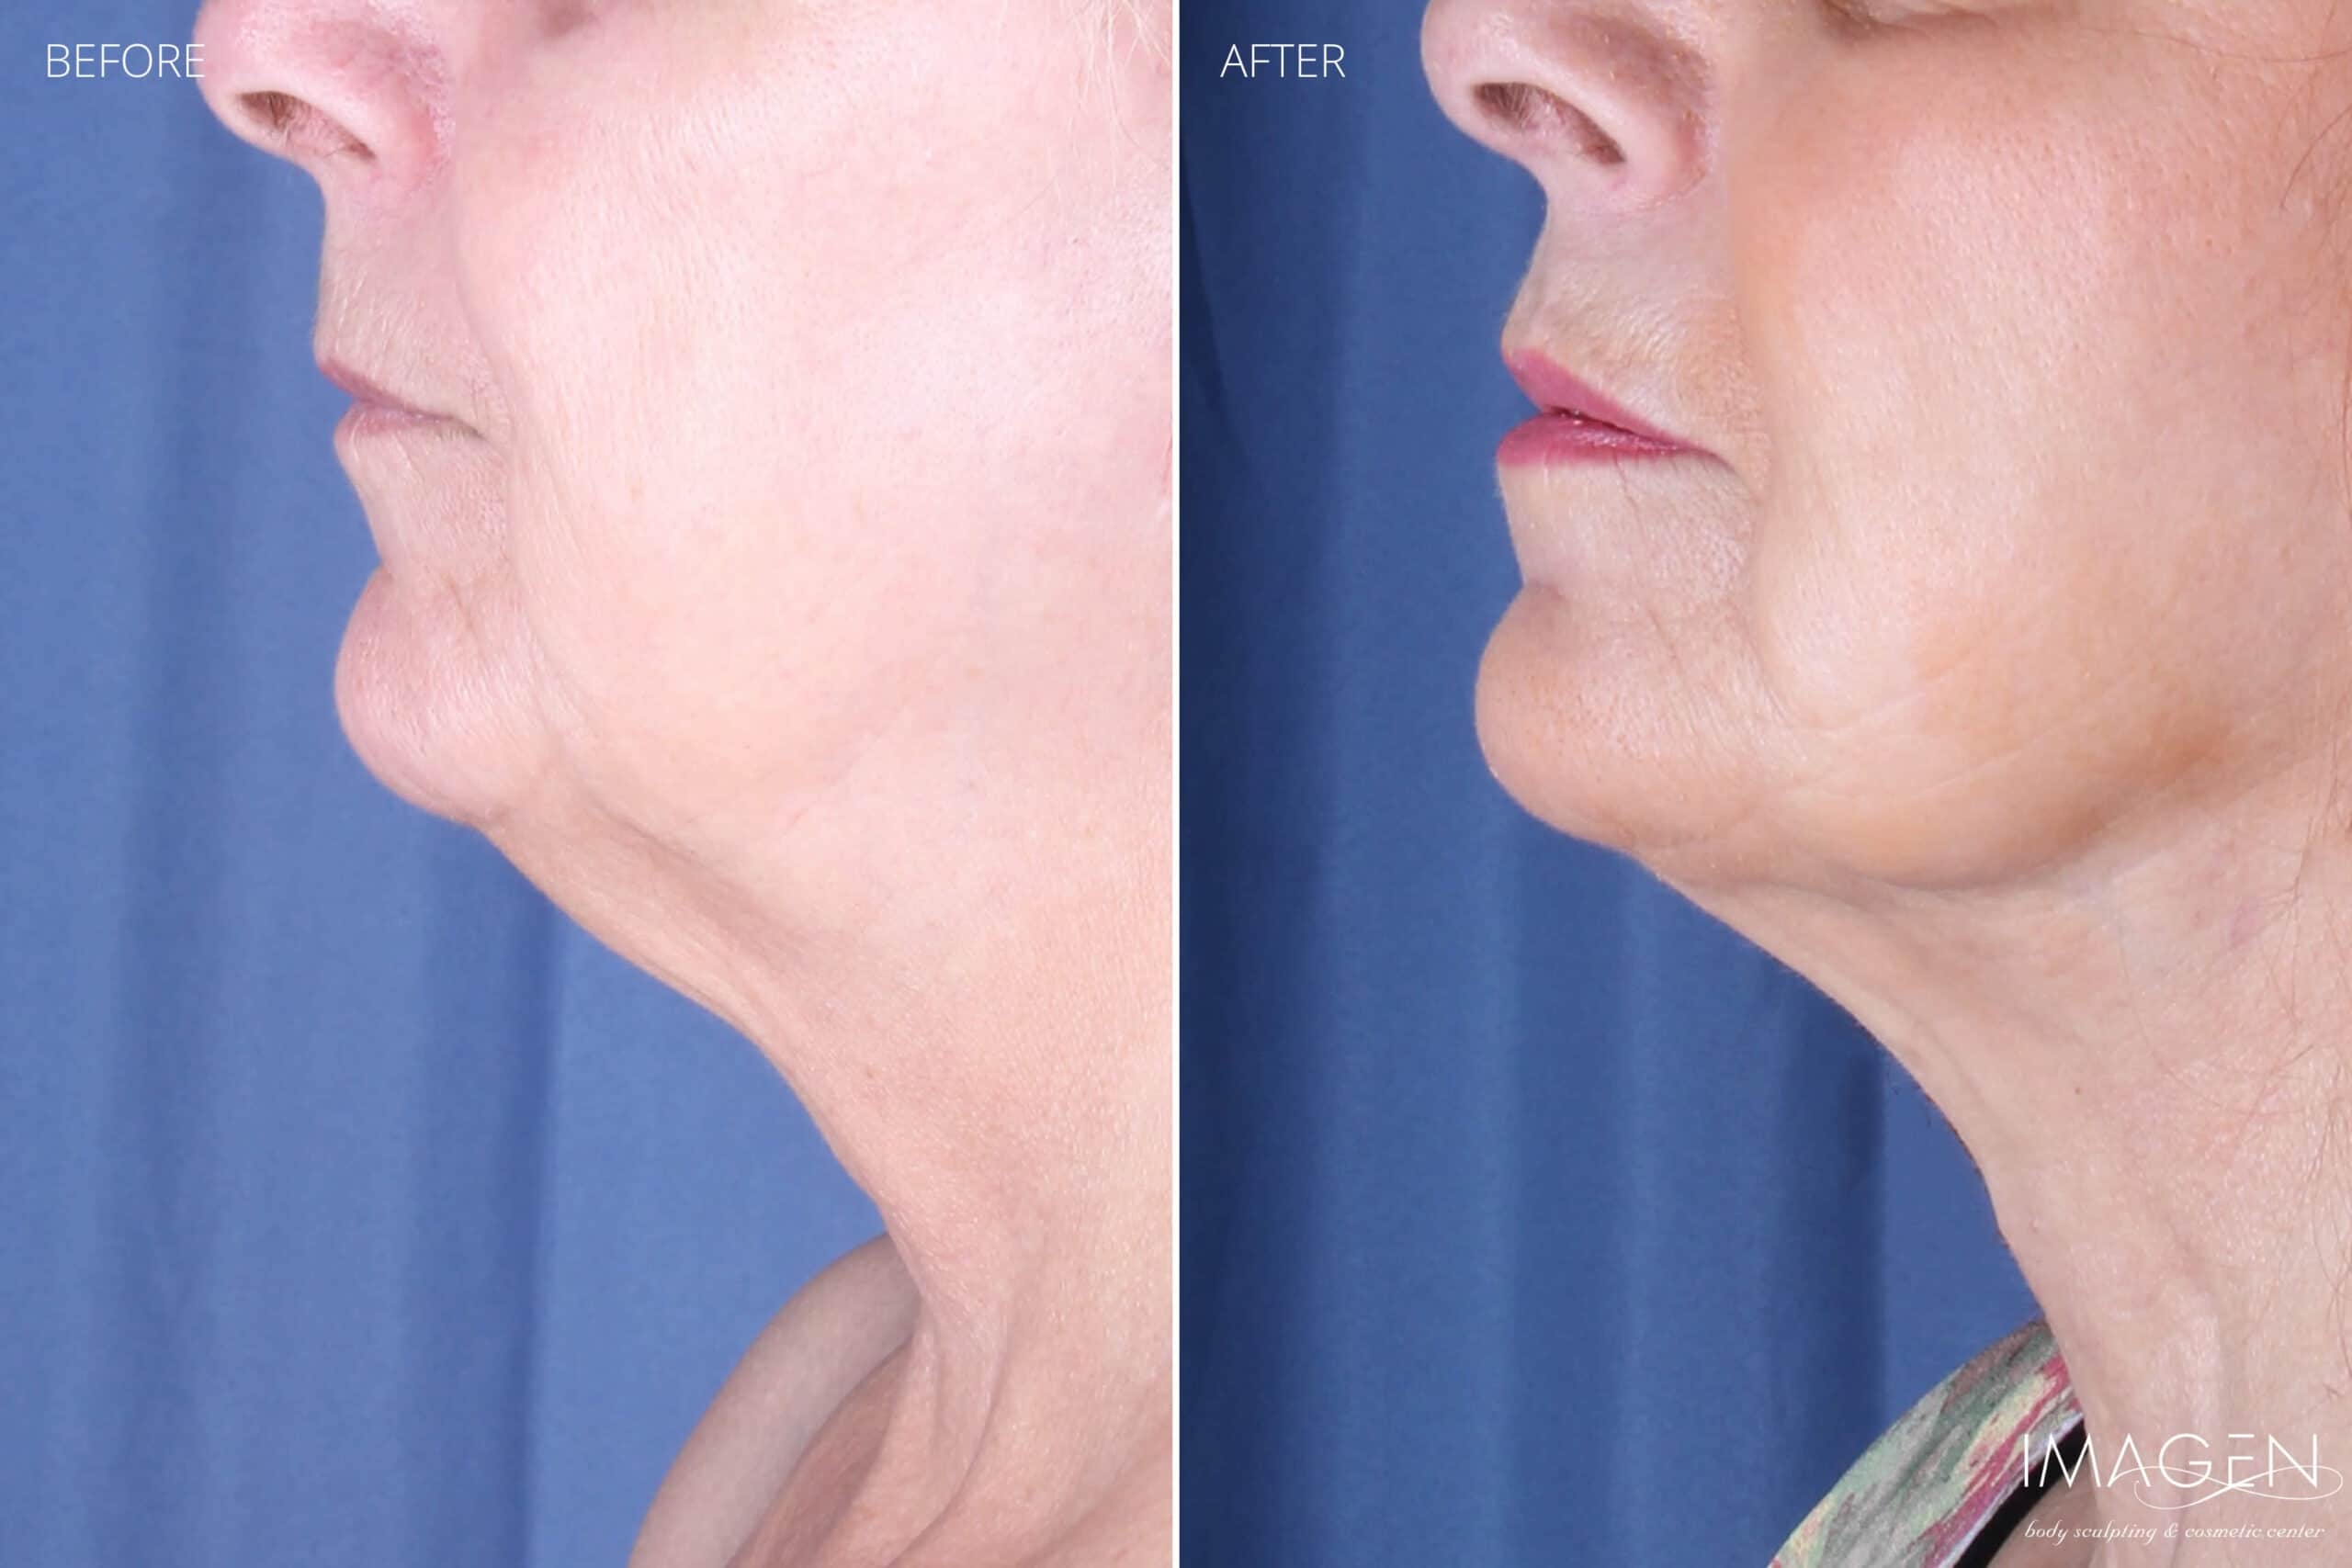 Before and After SmartLipo Chin